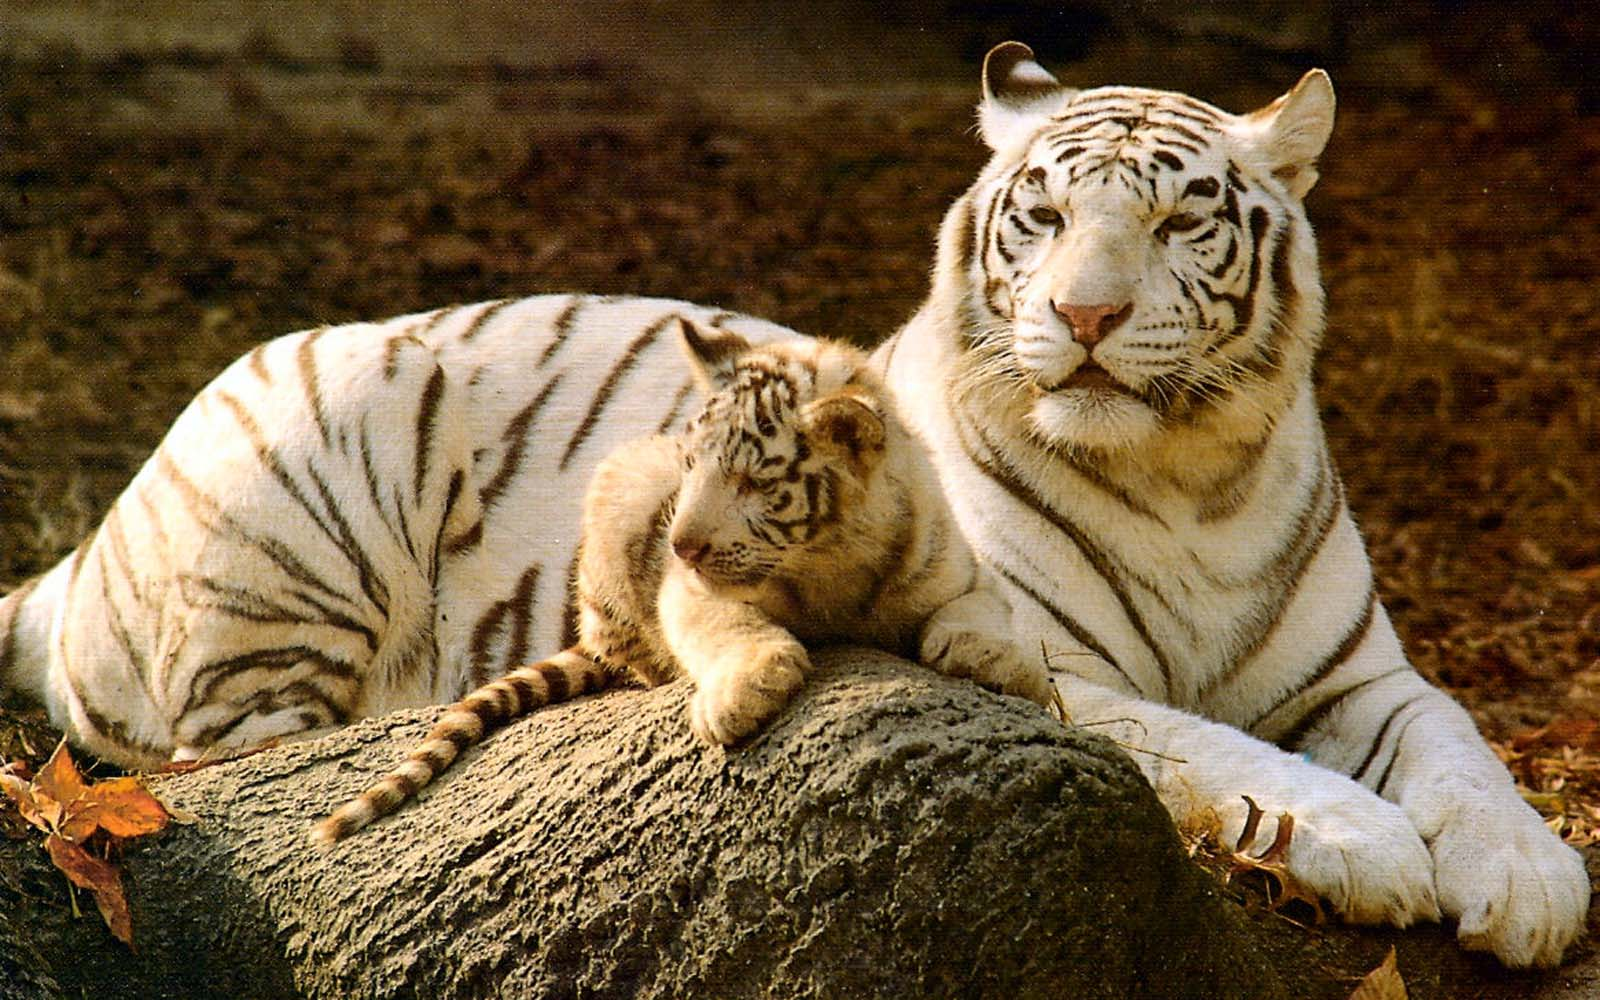 baby tiger wallpaper  Baby White Tiger Wallpapers - Wallpaper Cave